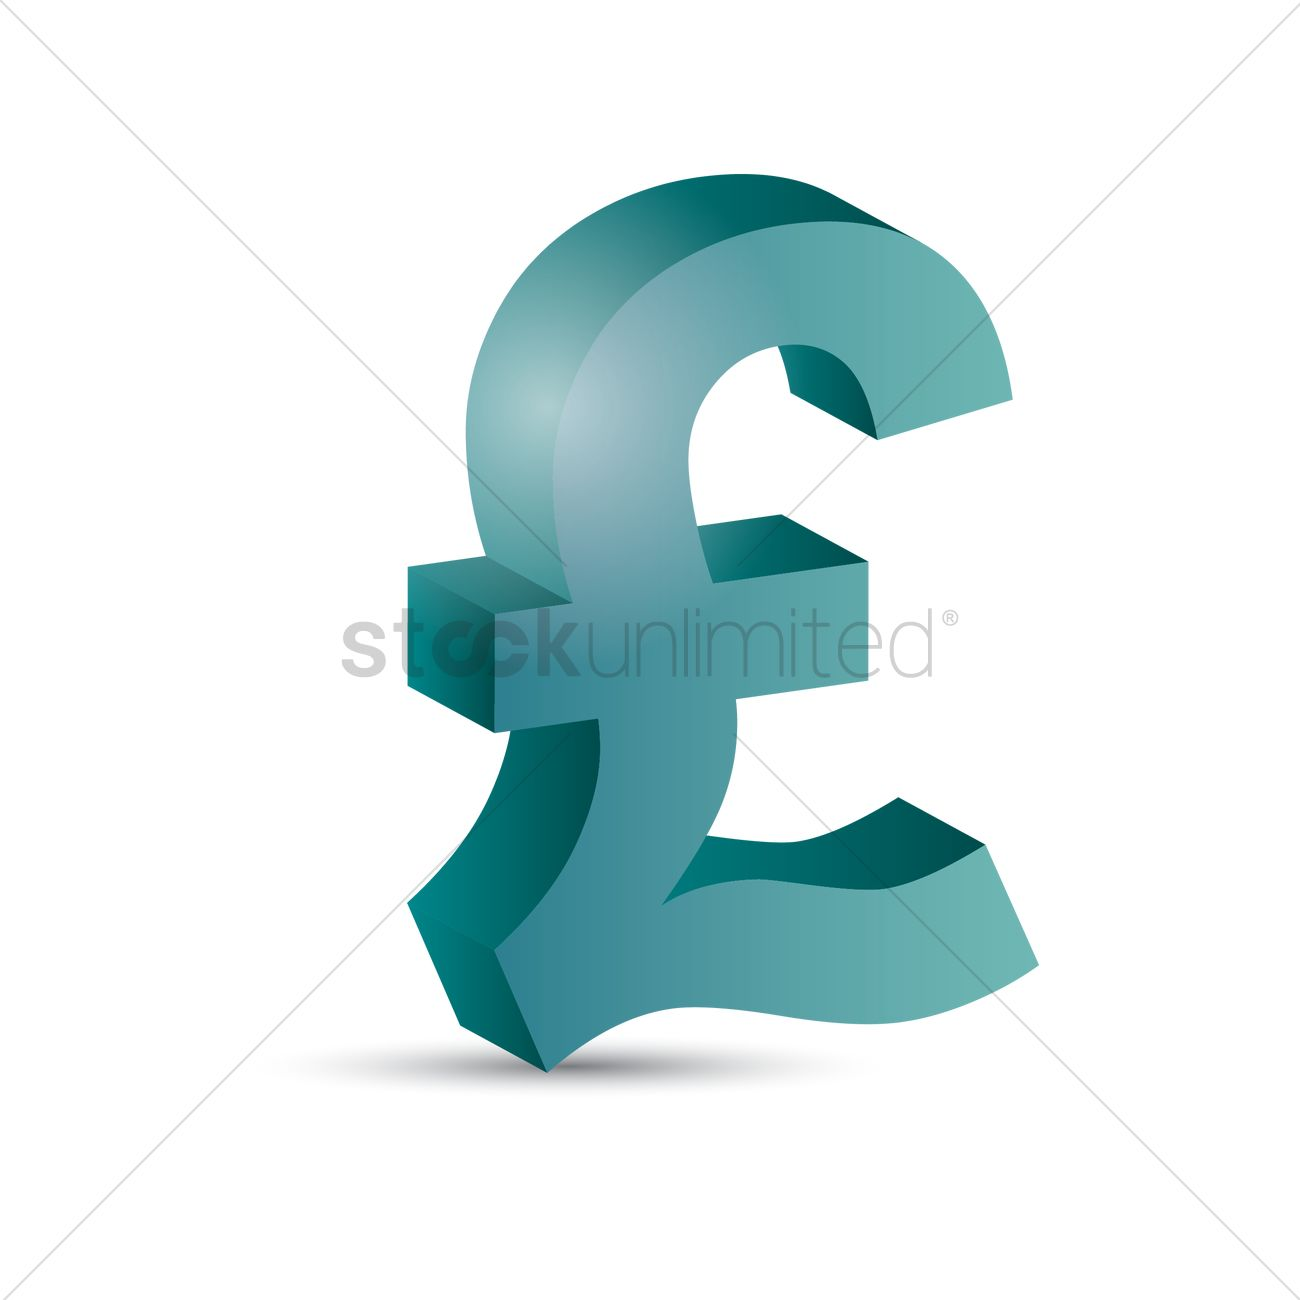 Uk Pound Sterling Symbol Vector Image 1866859 Stockunlimited